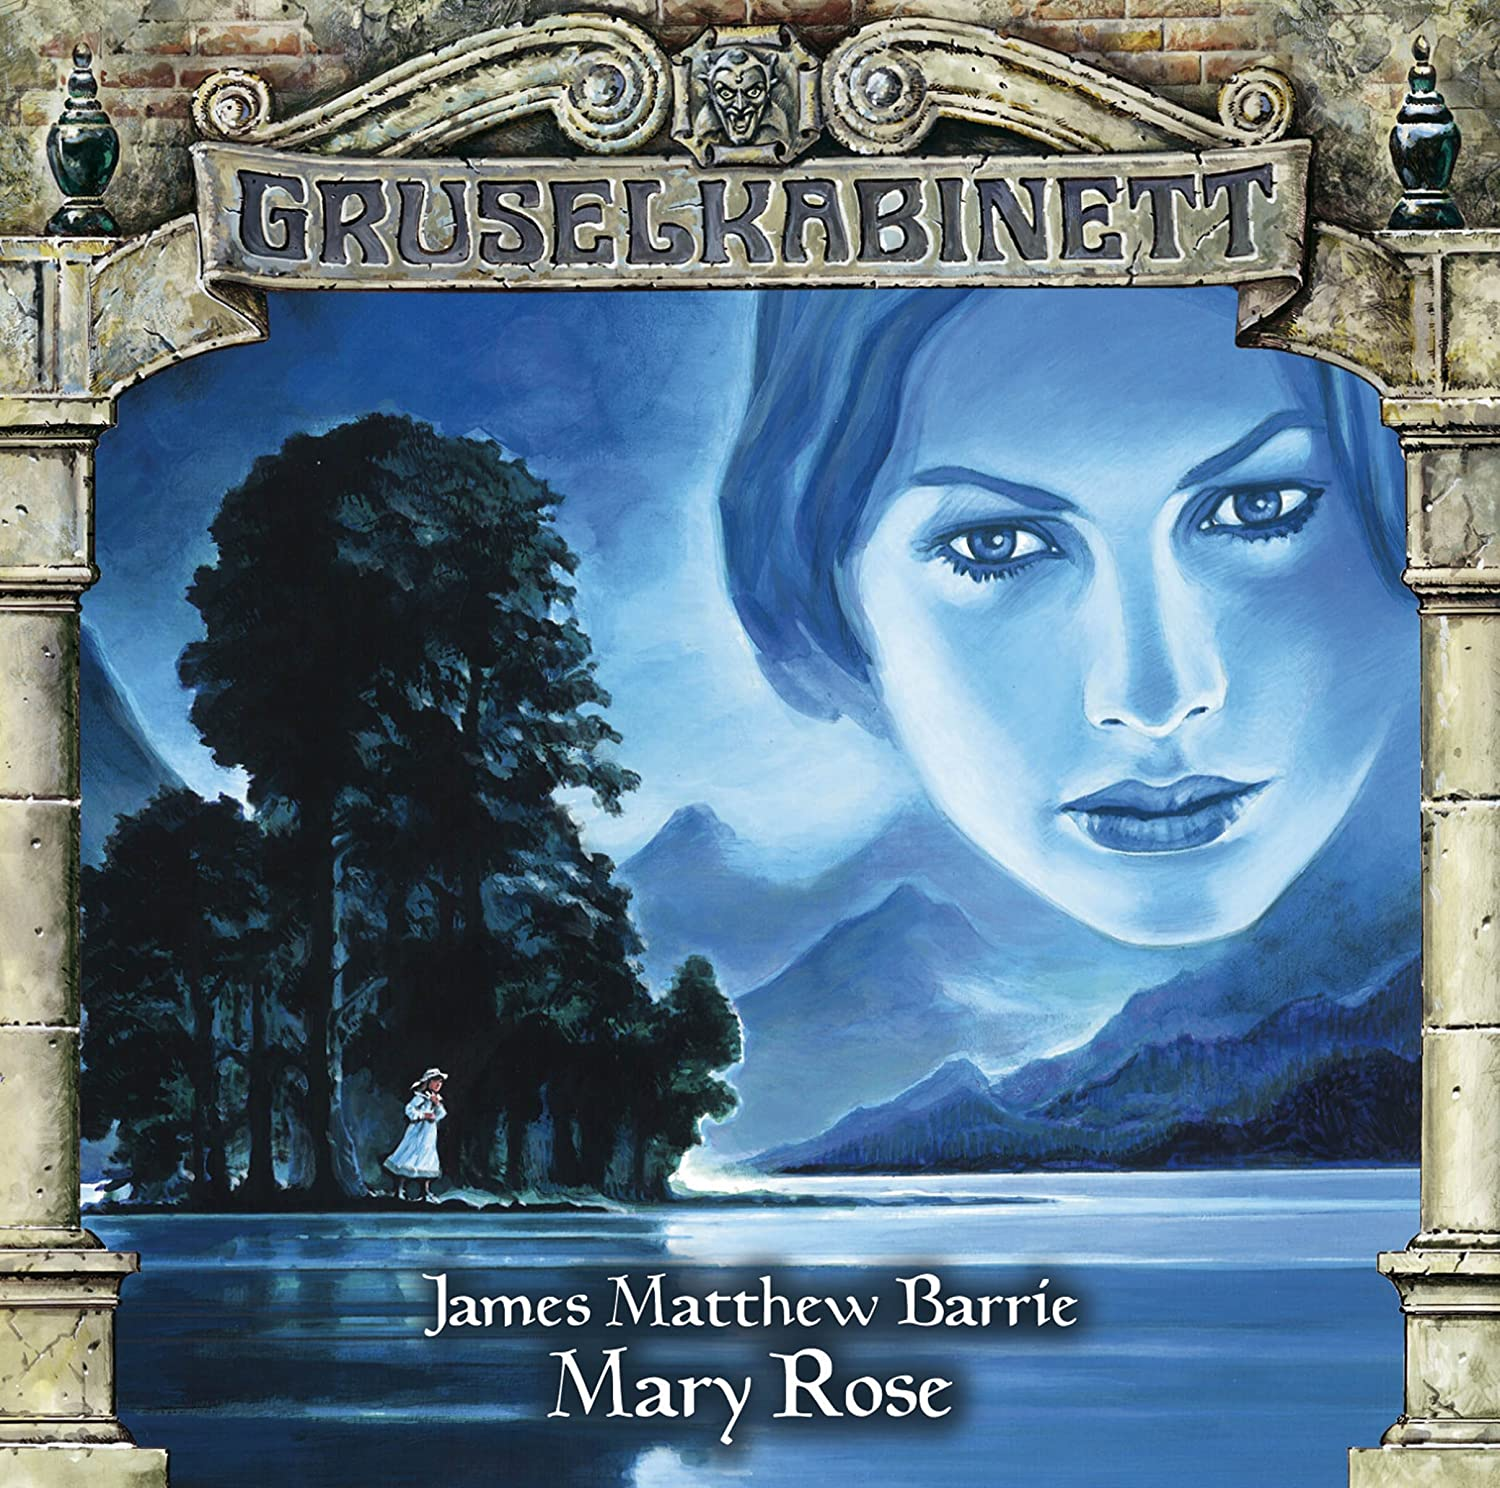 James Matthew Barrie - Mary Rose (Gruselkabinett 91)